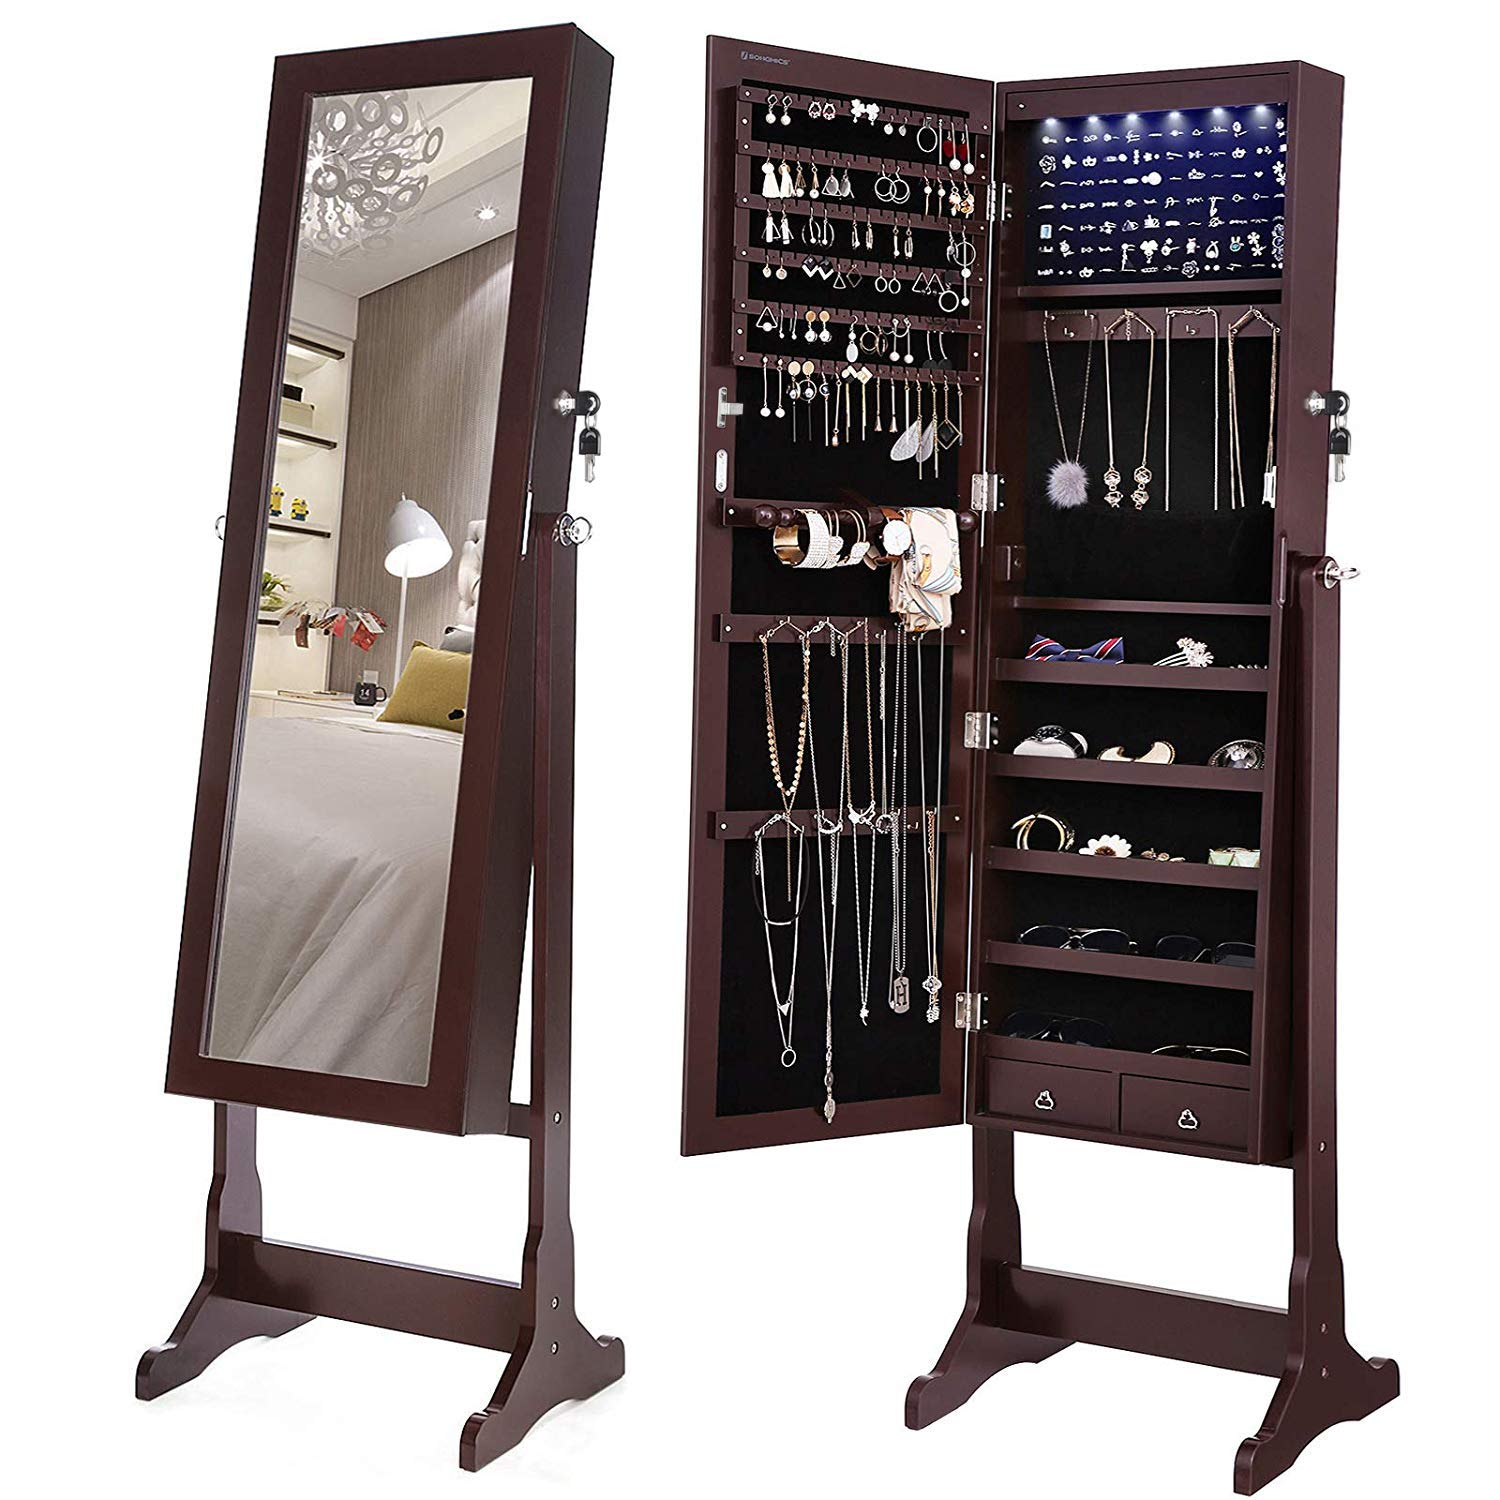 SONGMICS 6 LEDs Mirror Jewelry Cabinet Lockable Standing Mirrored Jewelry Armoire Organizer 2 Drawers Brown UJJC94K by SONGMICS (Image #1)